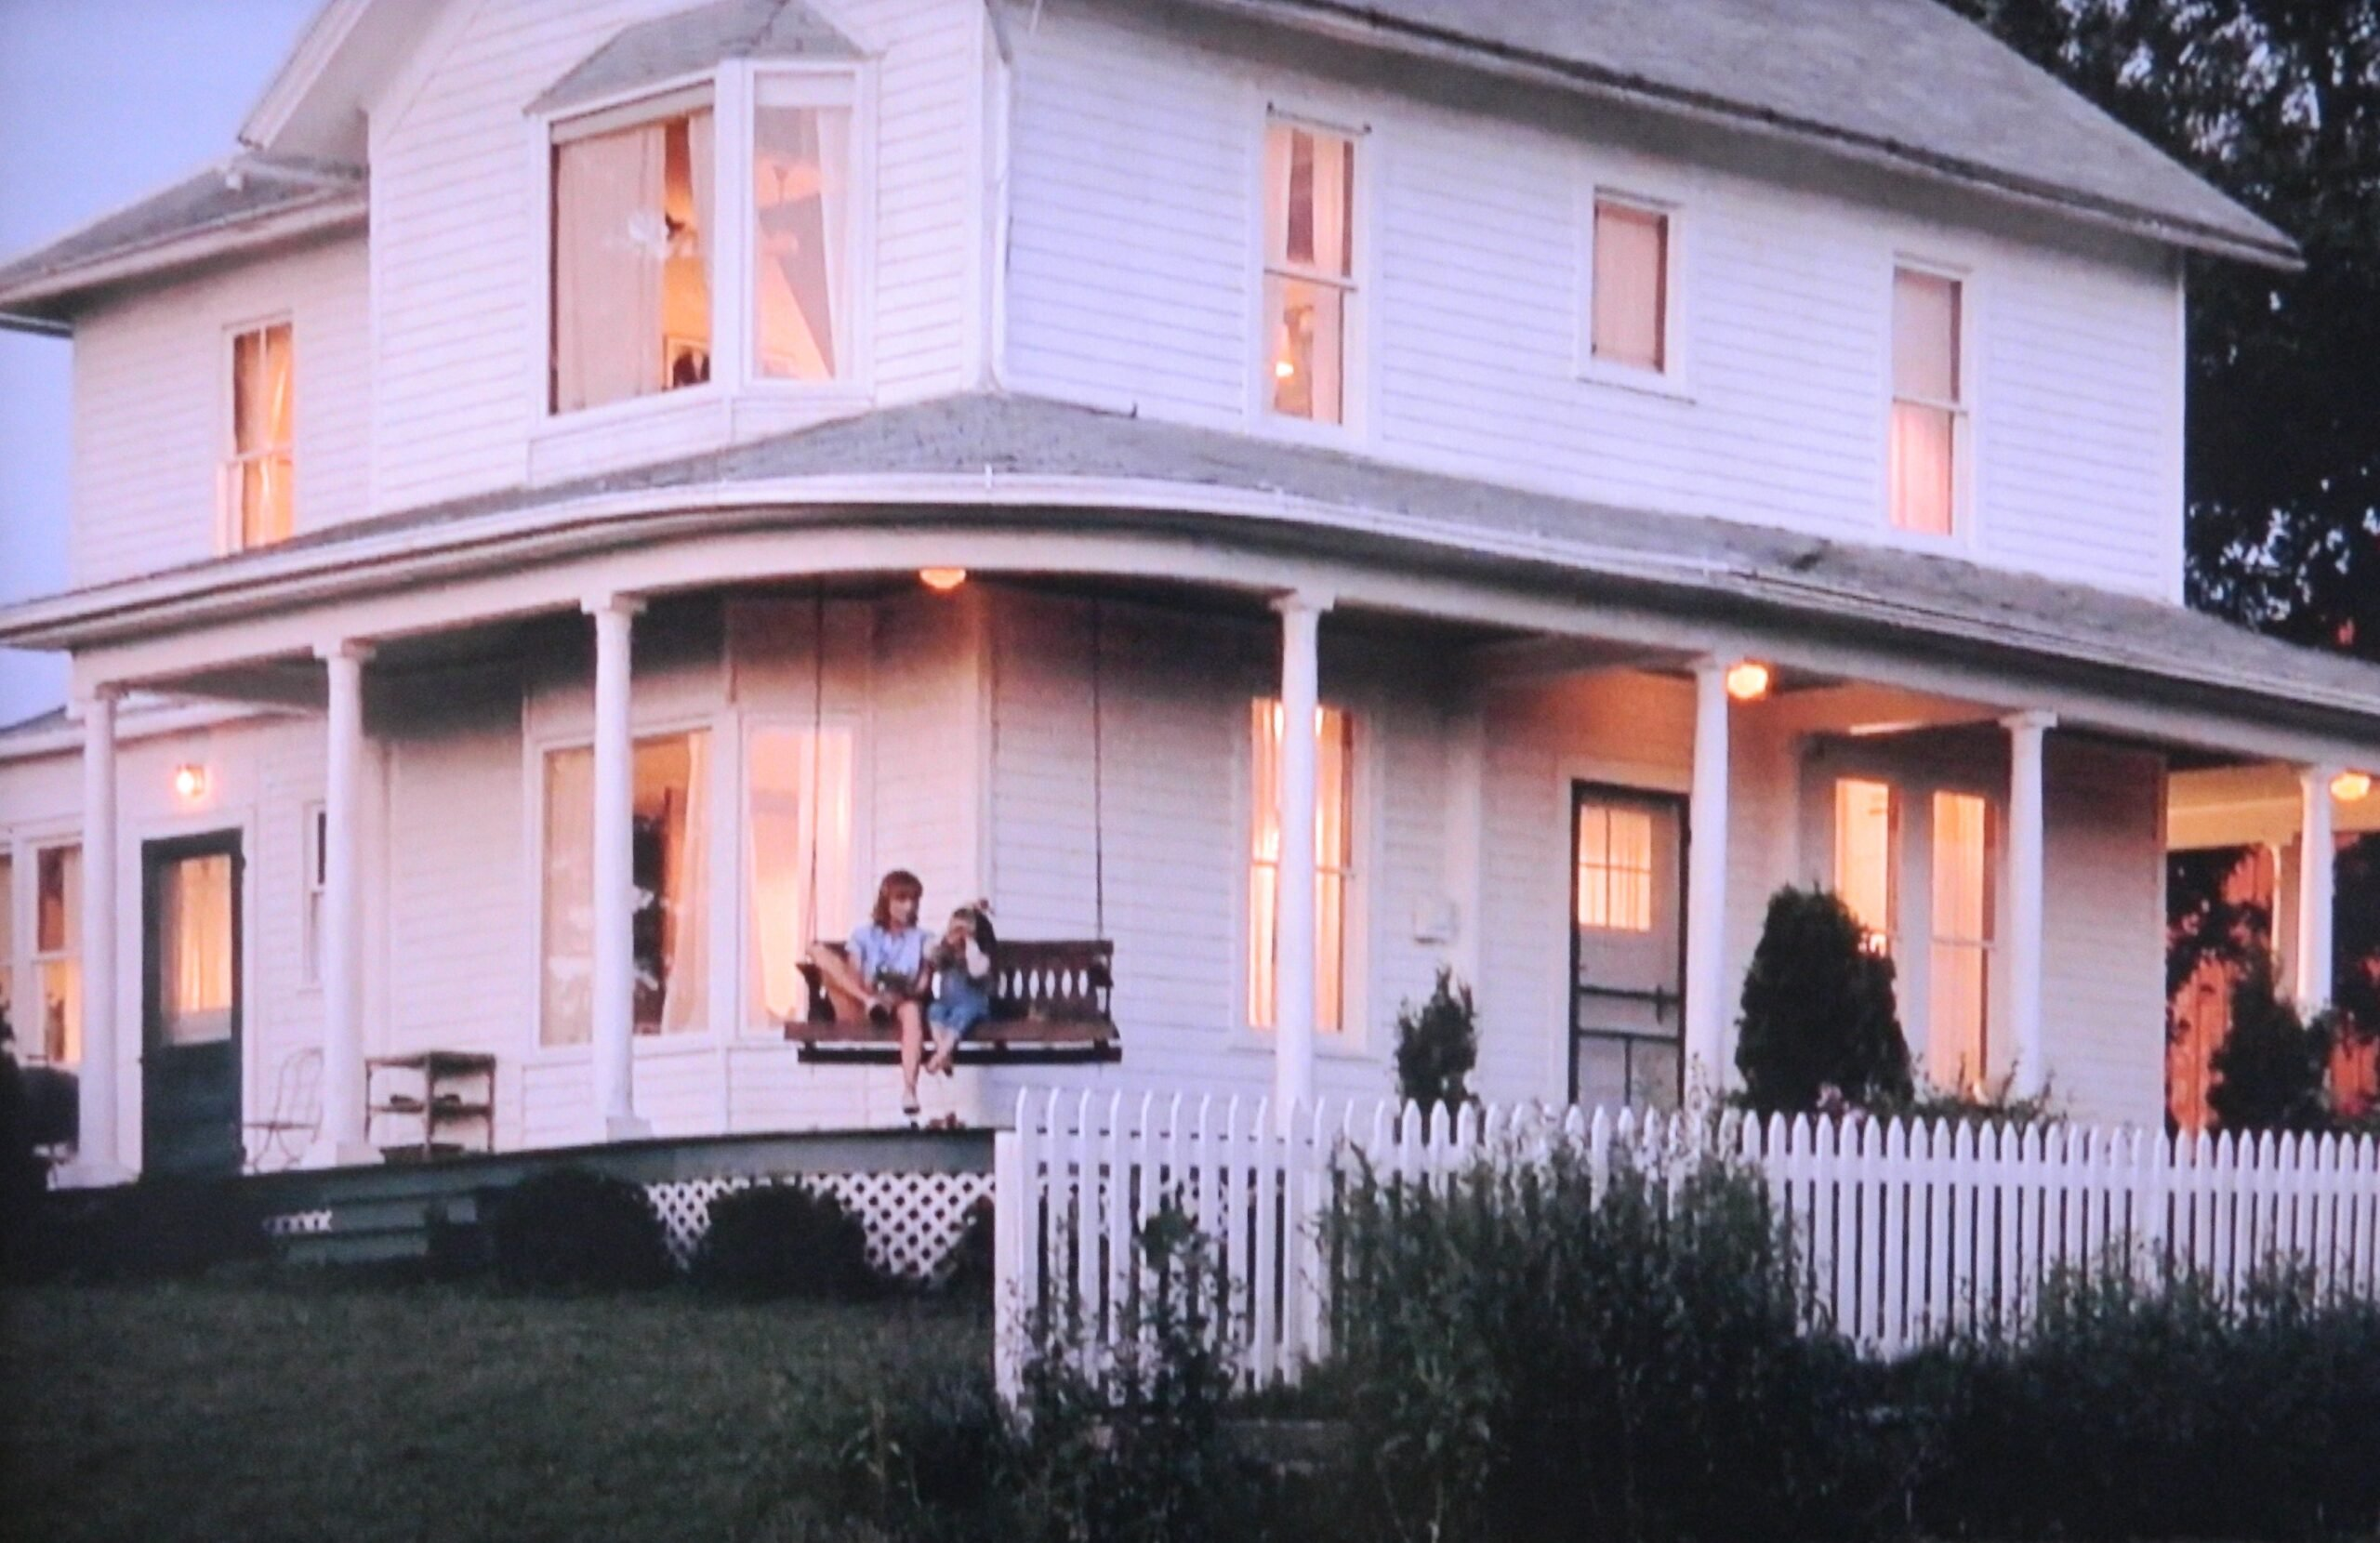 Field of Dreams Movie House